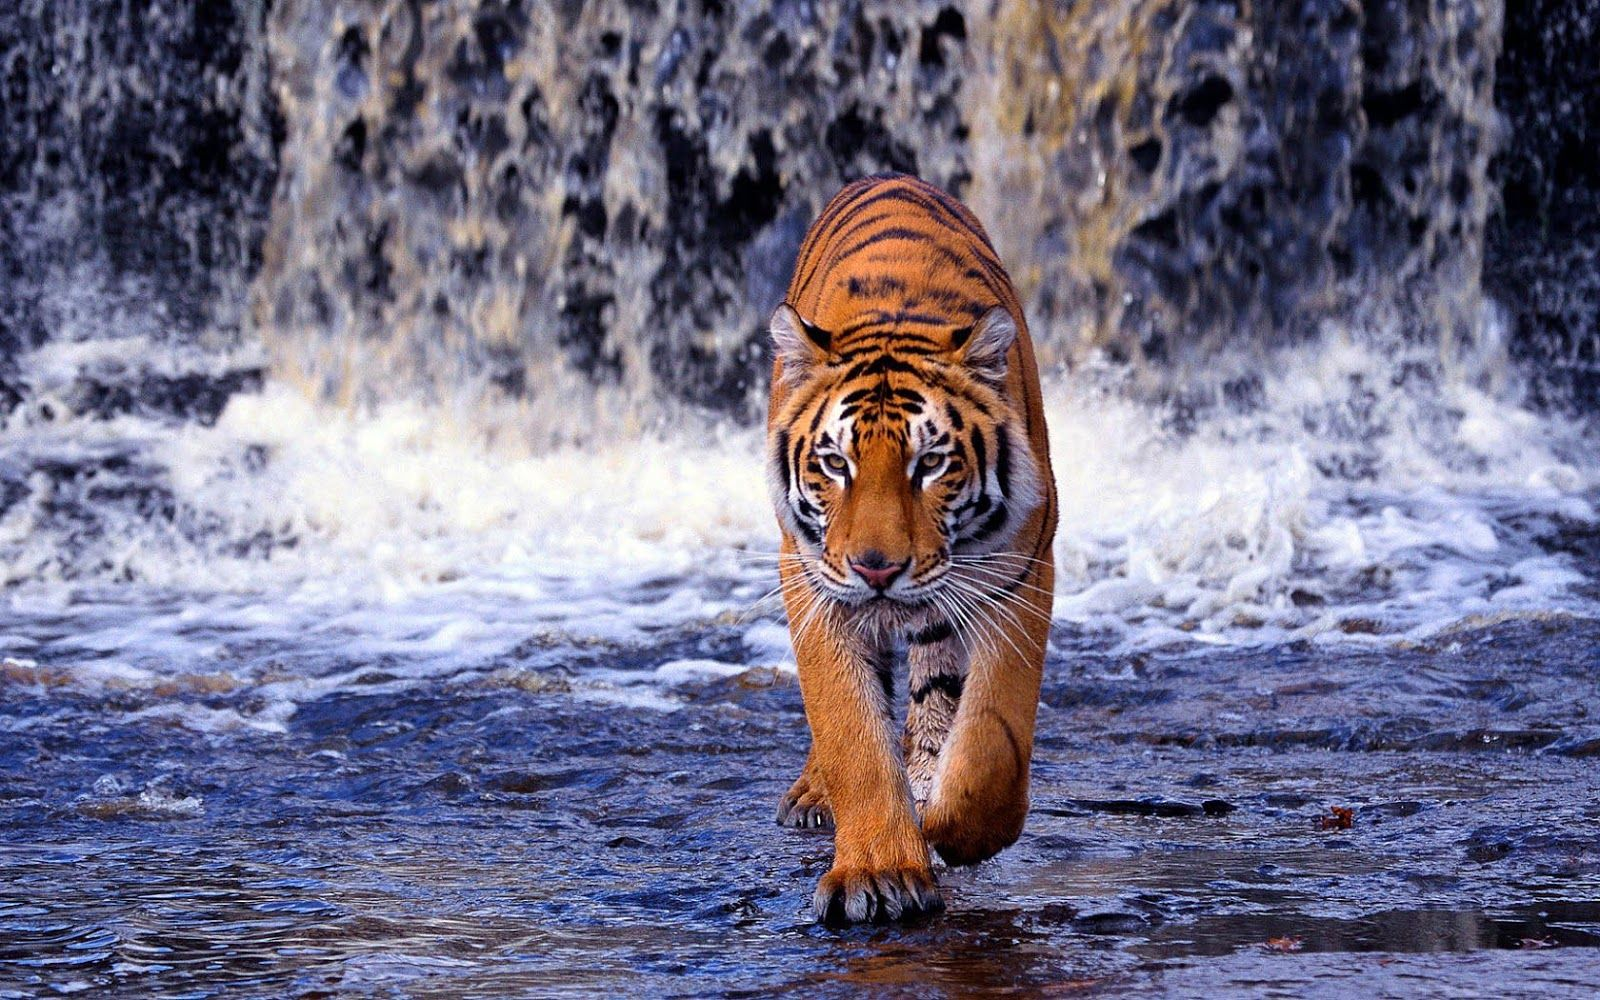 Tiger Wallpapers Hd Backgrounds 1600 1000 Tiger Image Wallpapers 38 Wallpapers Adorable Wallpapers Tiger Wallpaper